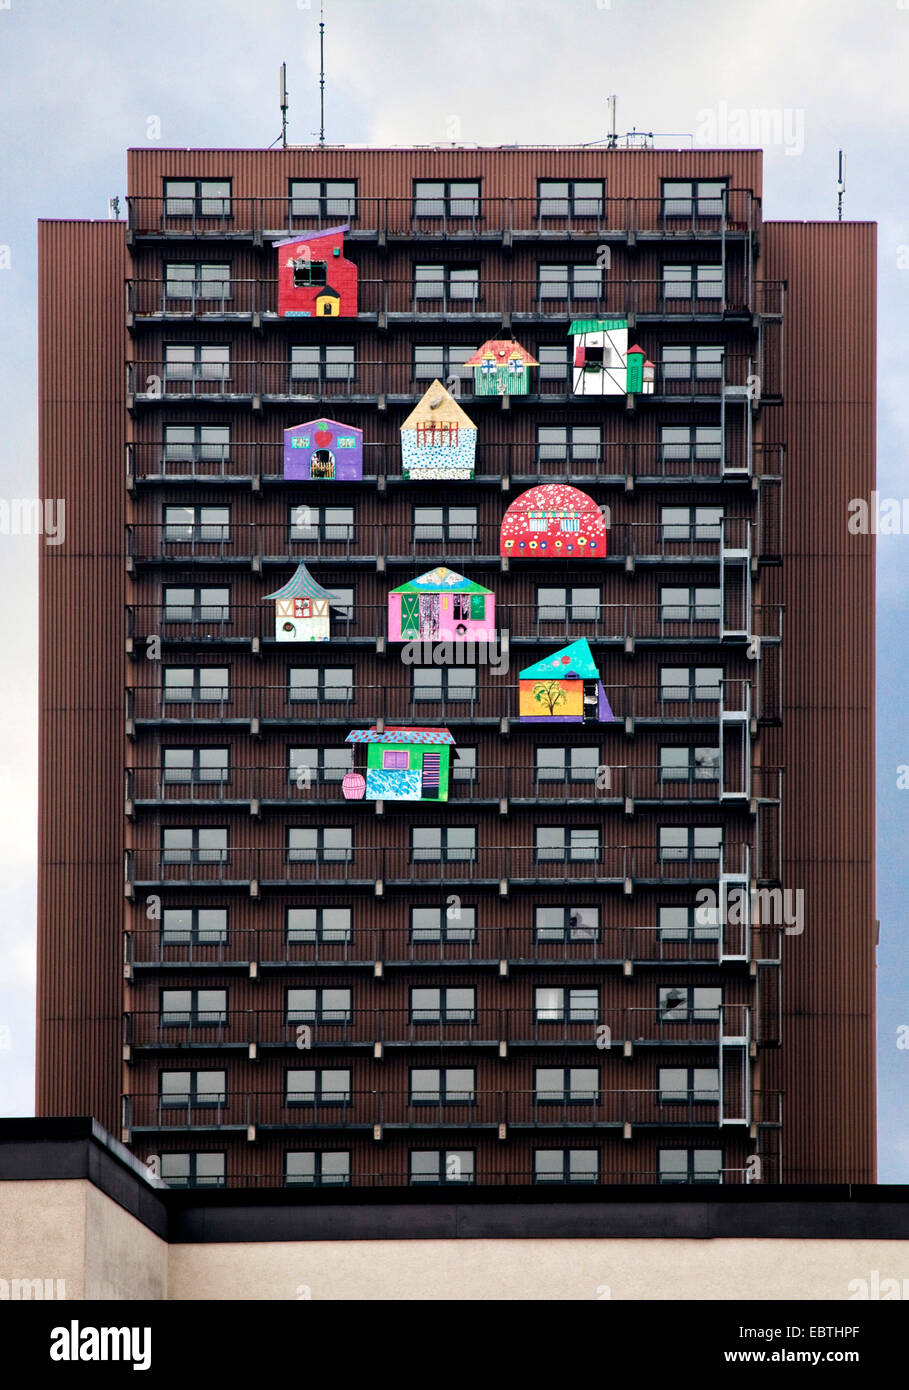 work of art 'Das Glueck' of HA Schult at the facade of a tower block, Germany, North Rhine-Westphalia, Ruhr Area, Stock Photo